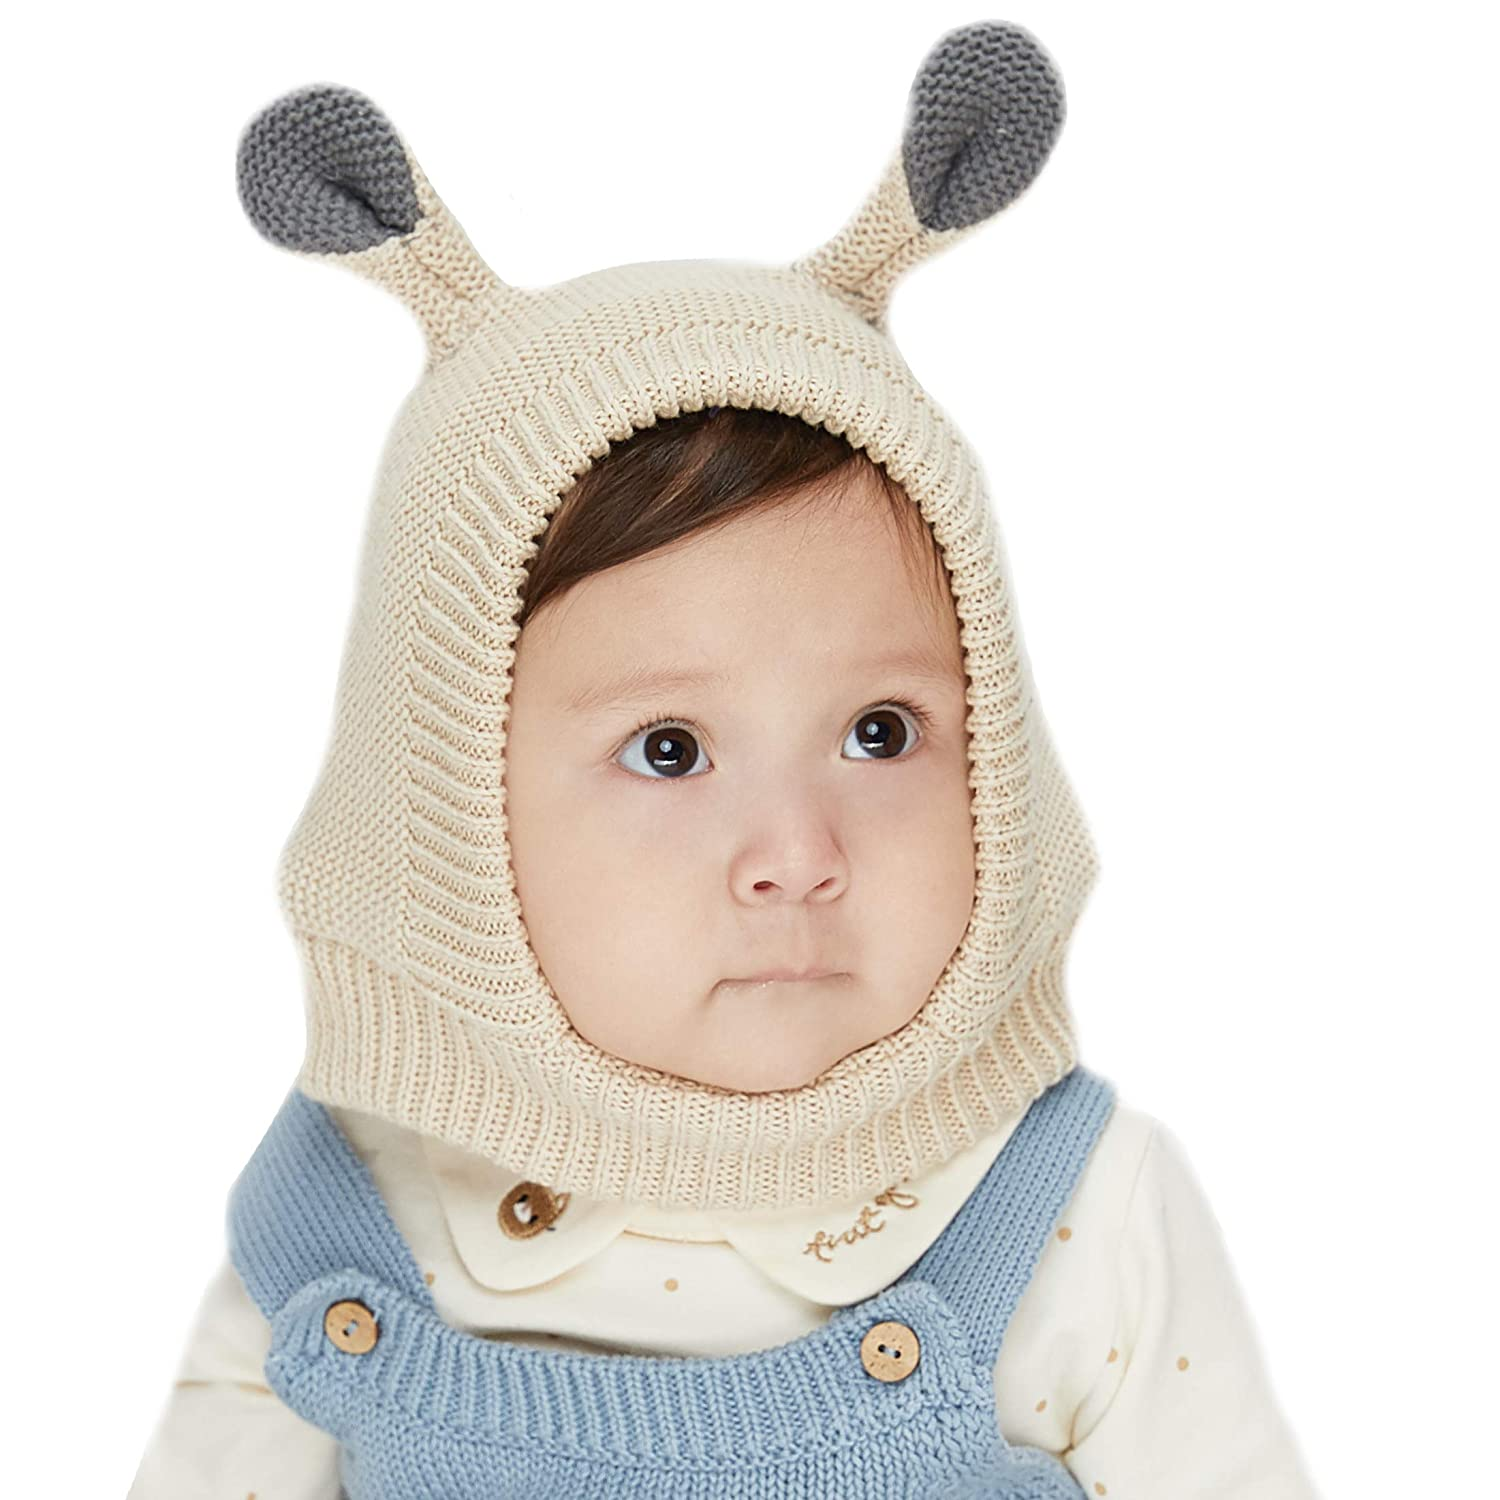 c4cea9f363c Amazon.com  LETTAS Infant Baby Boys Girls Fall Winter Earflap Beanie Soft  Warm Knitted Hat Cute Bear Baby Caps for 0-3 Years  Clothing